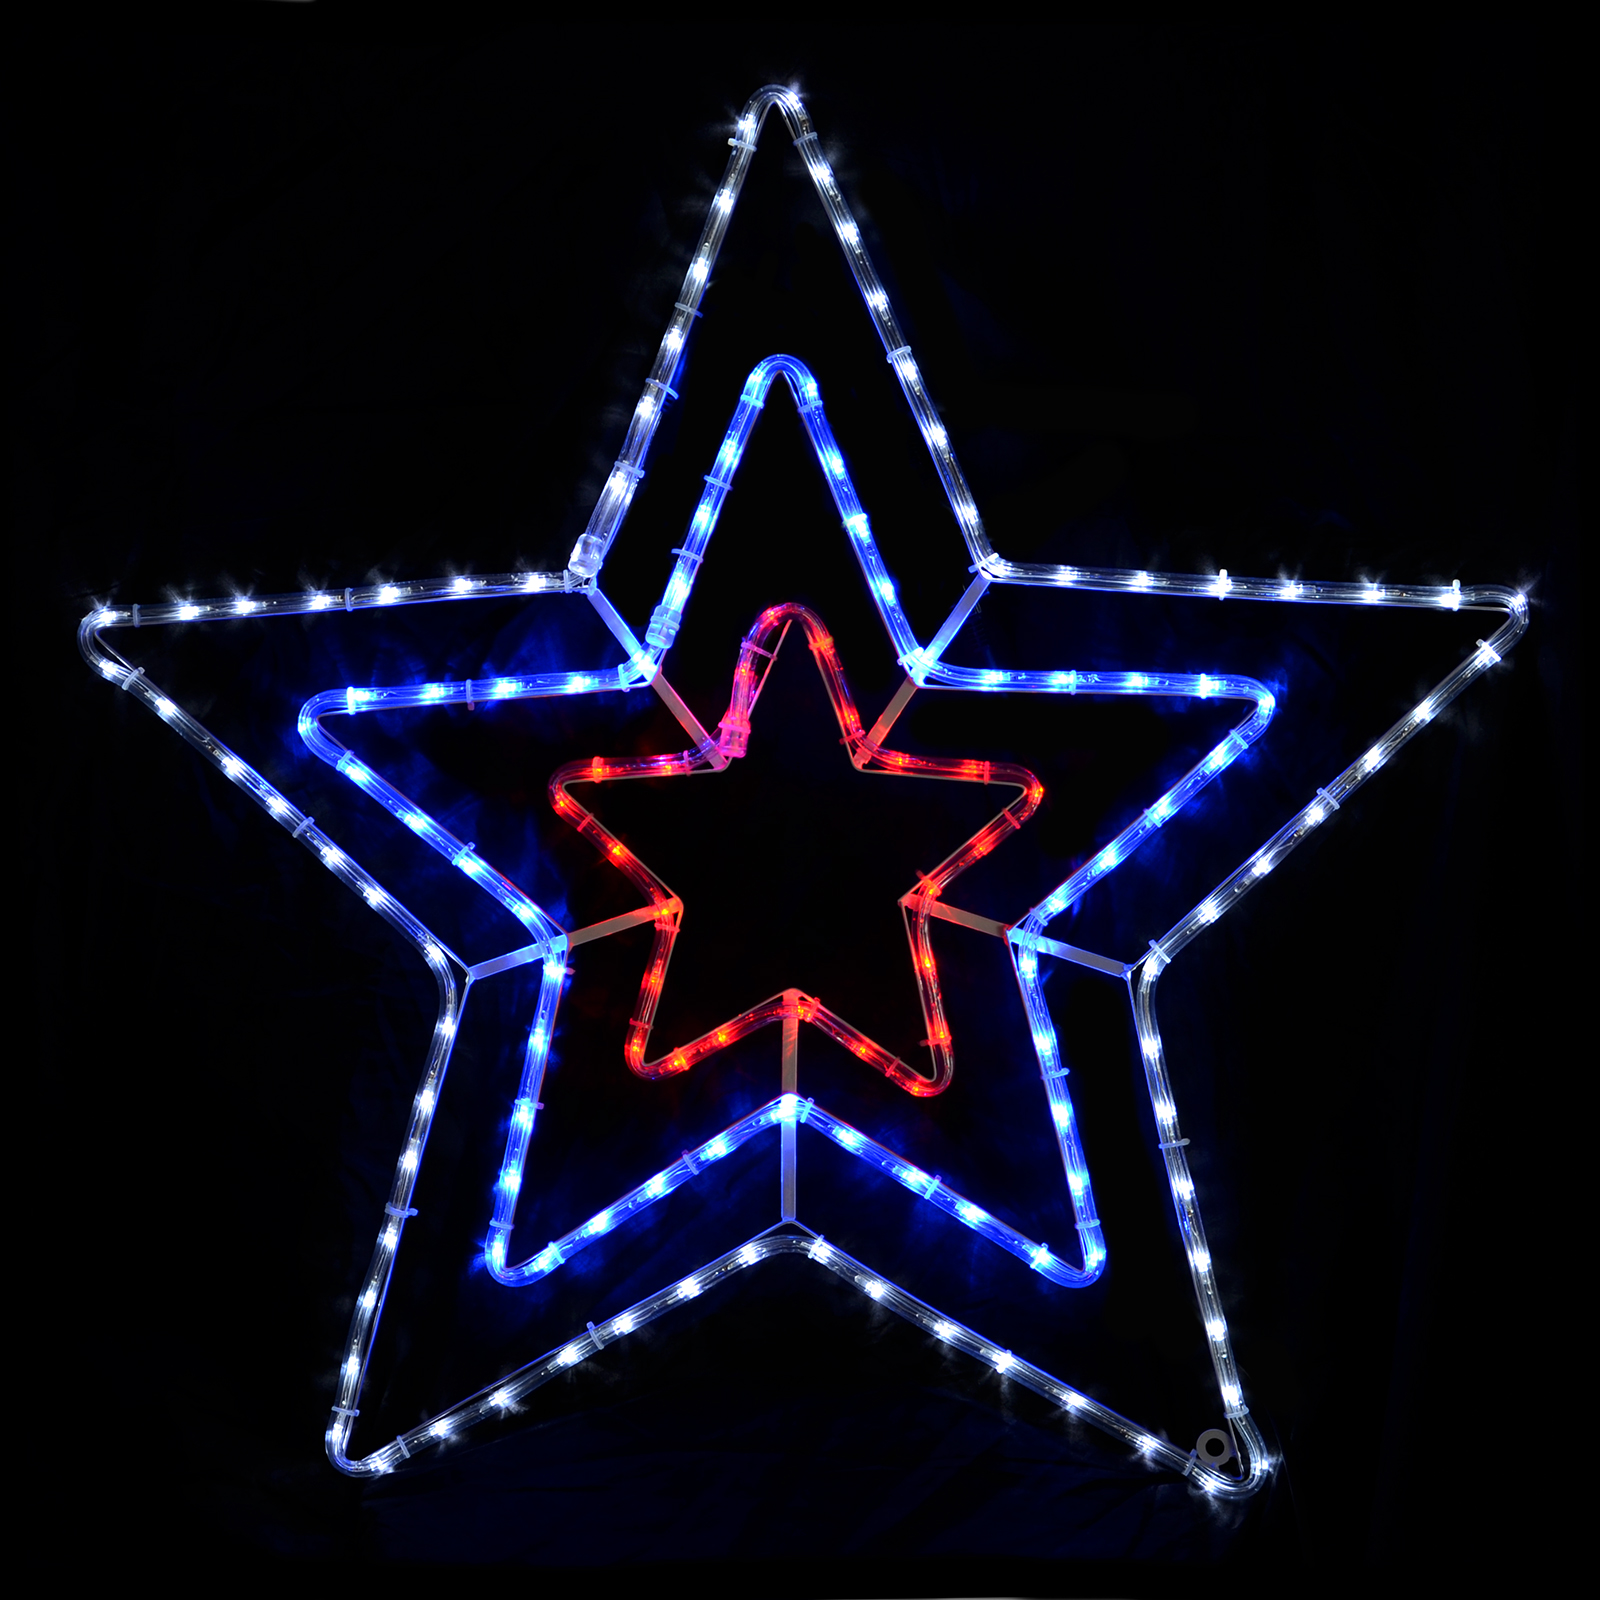 81x81cm indoor outdoor chasing flashing triple star xmas rope light